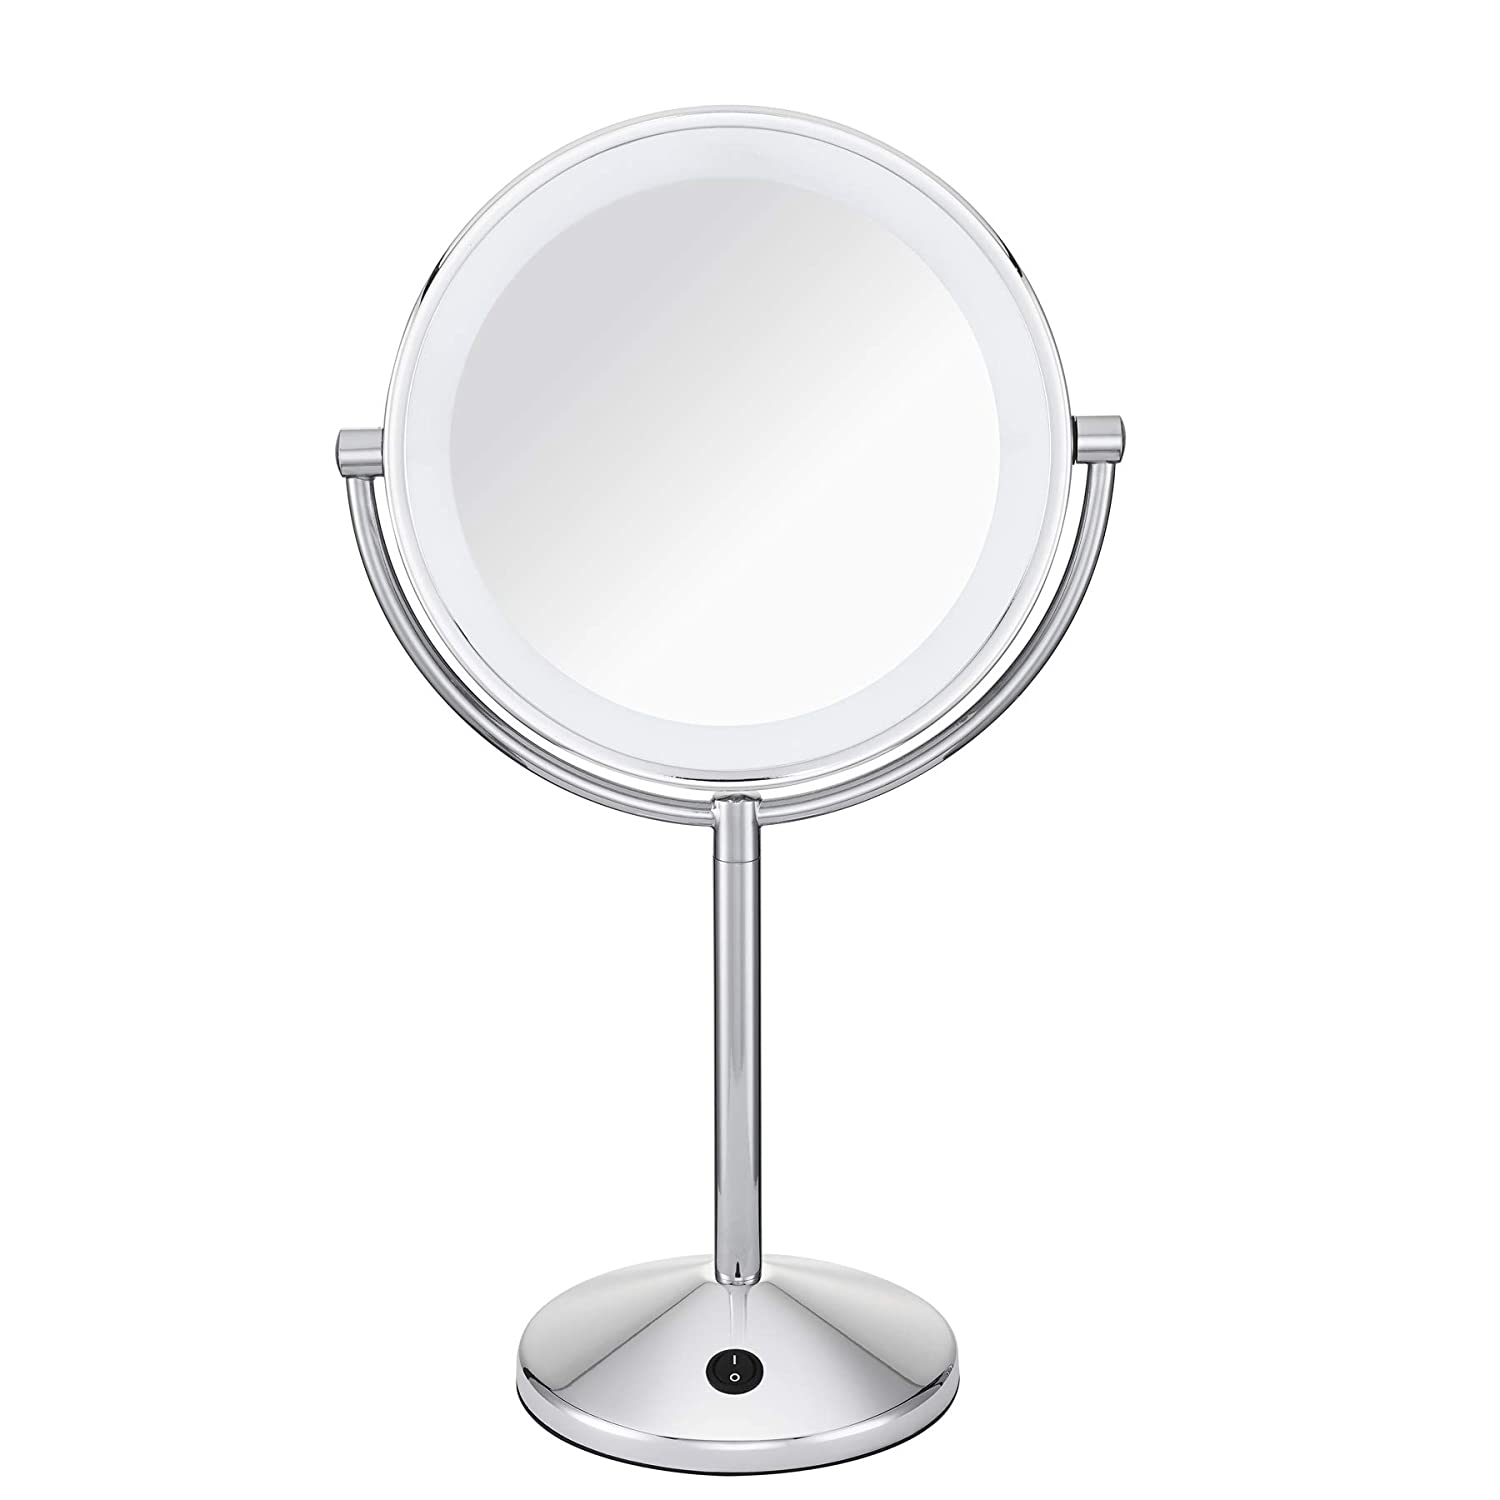 Conair Double-Sided Battery Operated Lighted Makeup Mirror - Lighted Vanity Makeup Mirror, LED Lighting, 1x / 10x Magnification, Polished Chrome Finish